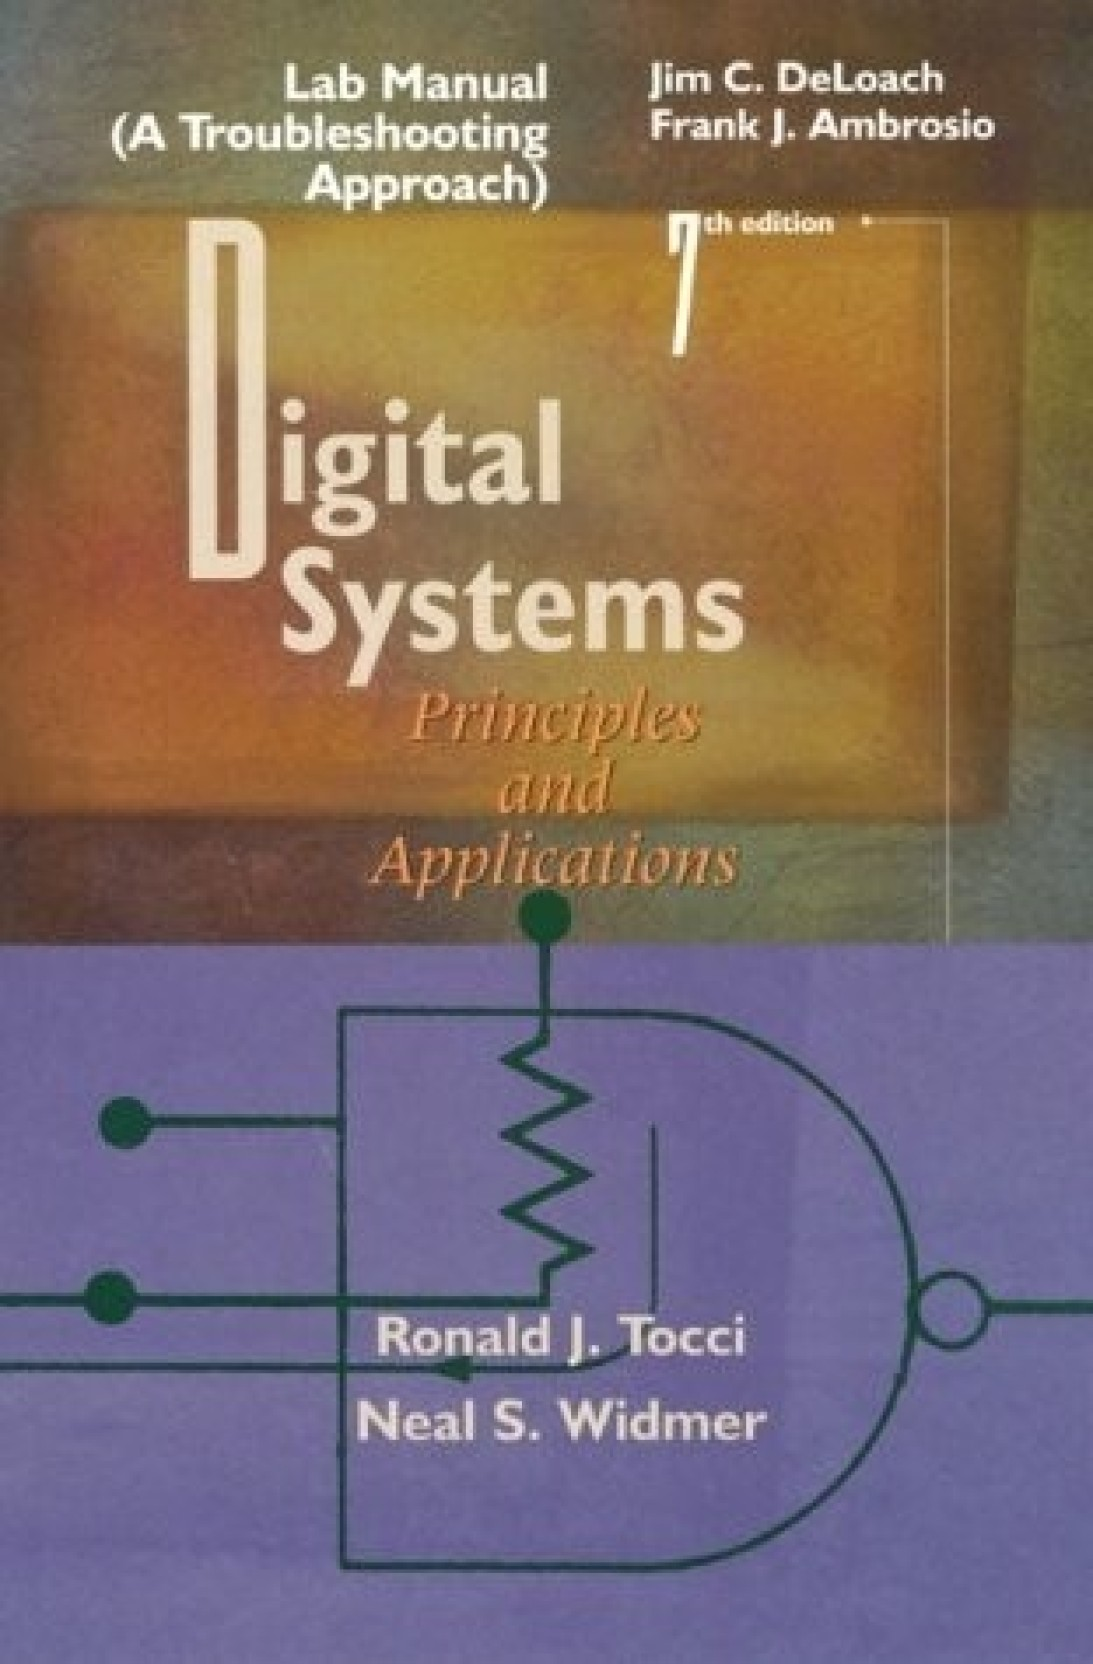 Digital Systems - Principles And Applications 8th Study Edition. Share